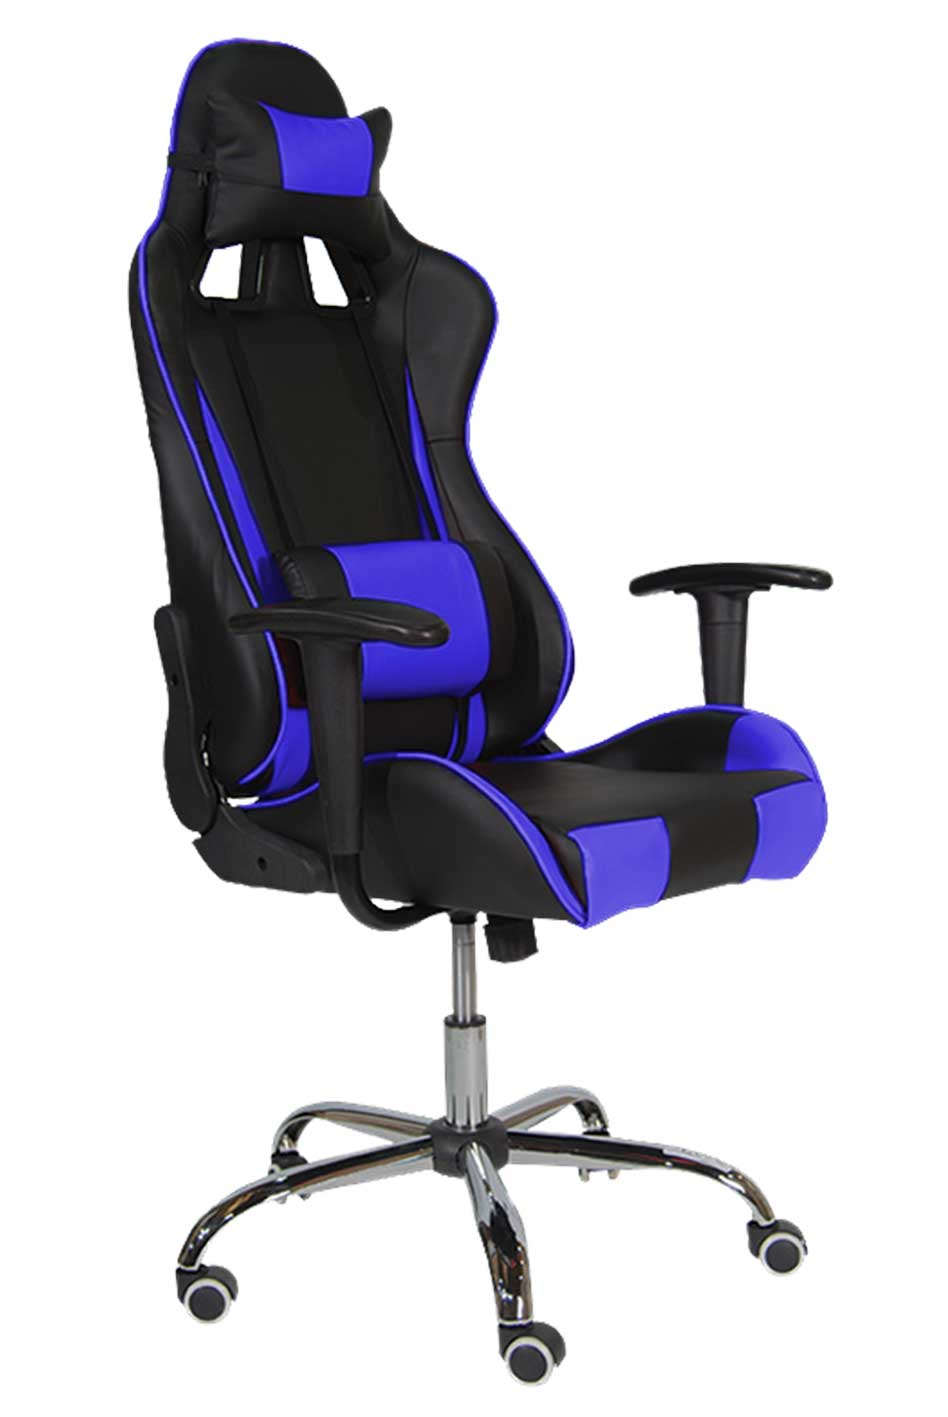 chair&desk warehouse johannesburg home depot patio chairs g15073 gaming chair furniture liquidation sale